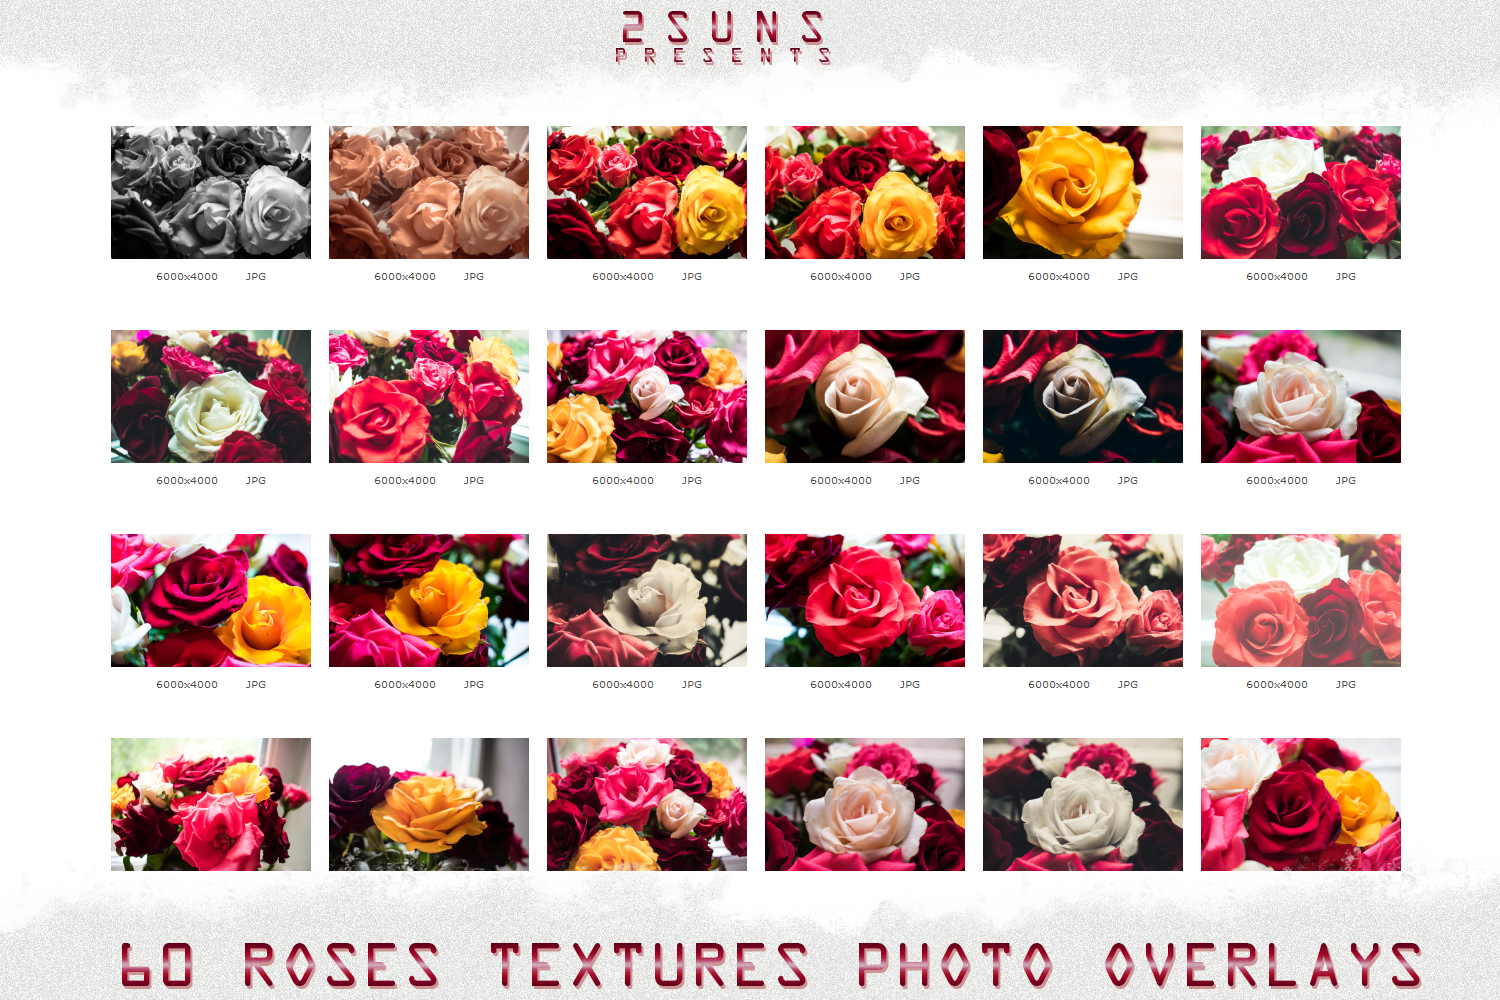 image relating to Printable Textures titled Obtain picture overlays crimson rose petals printable textures